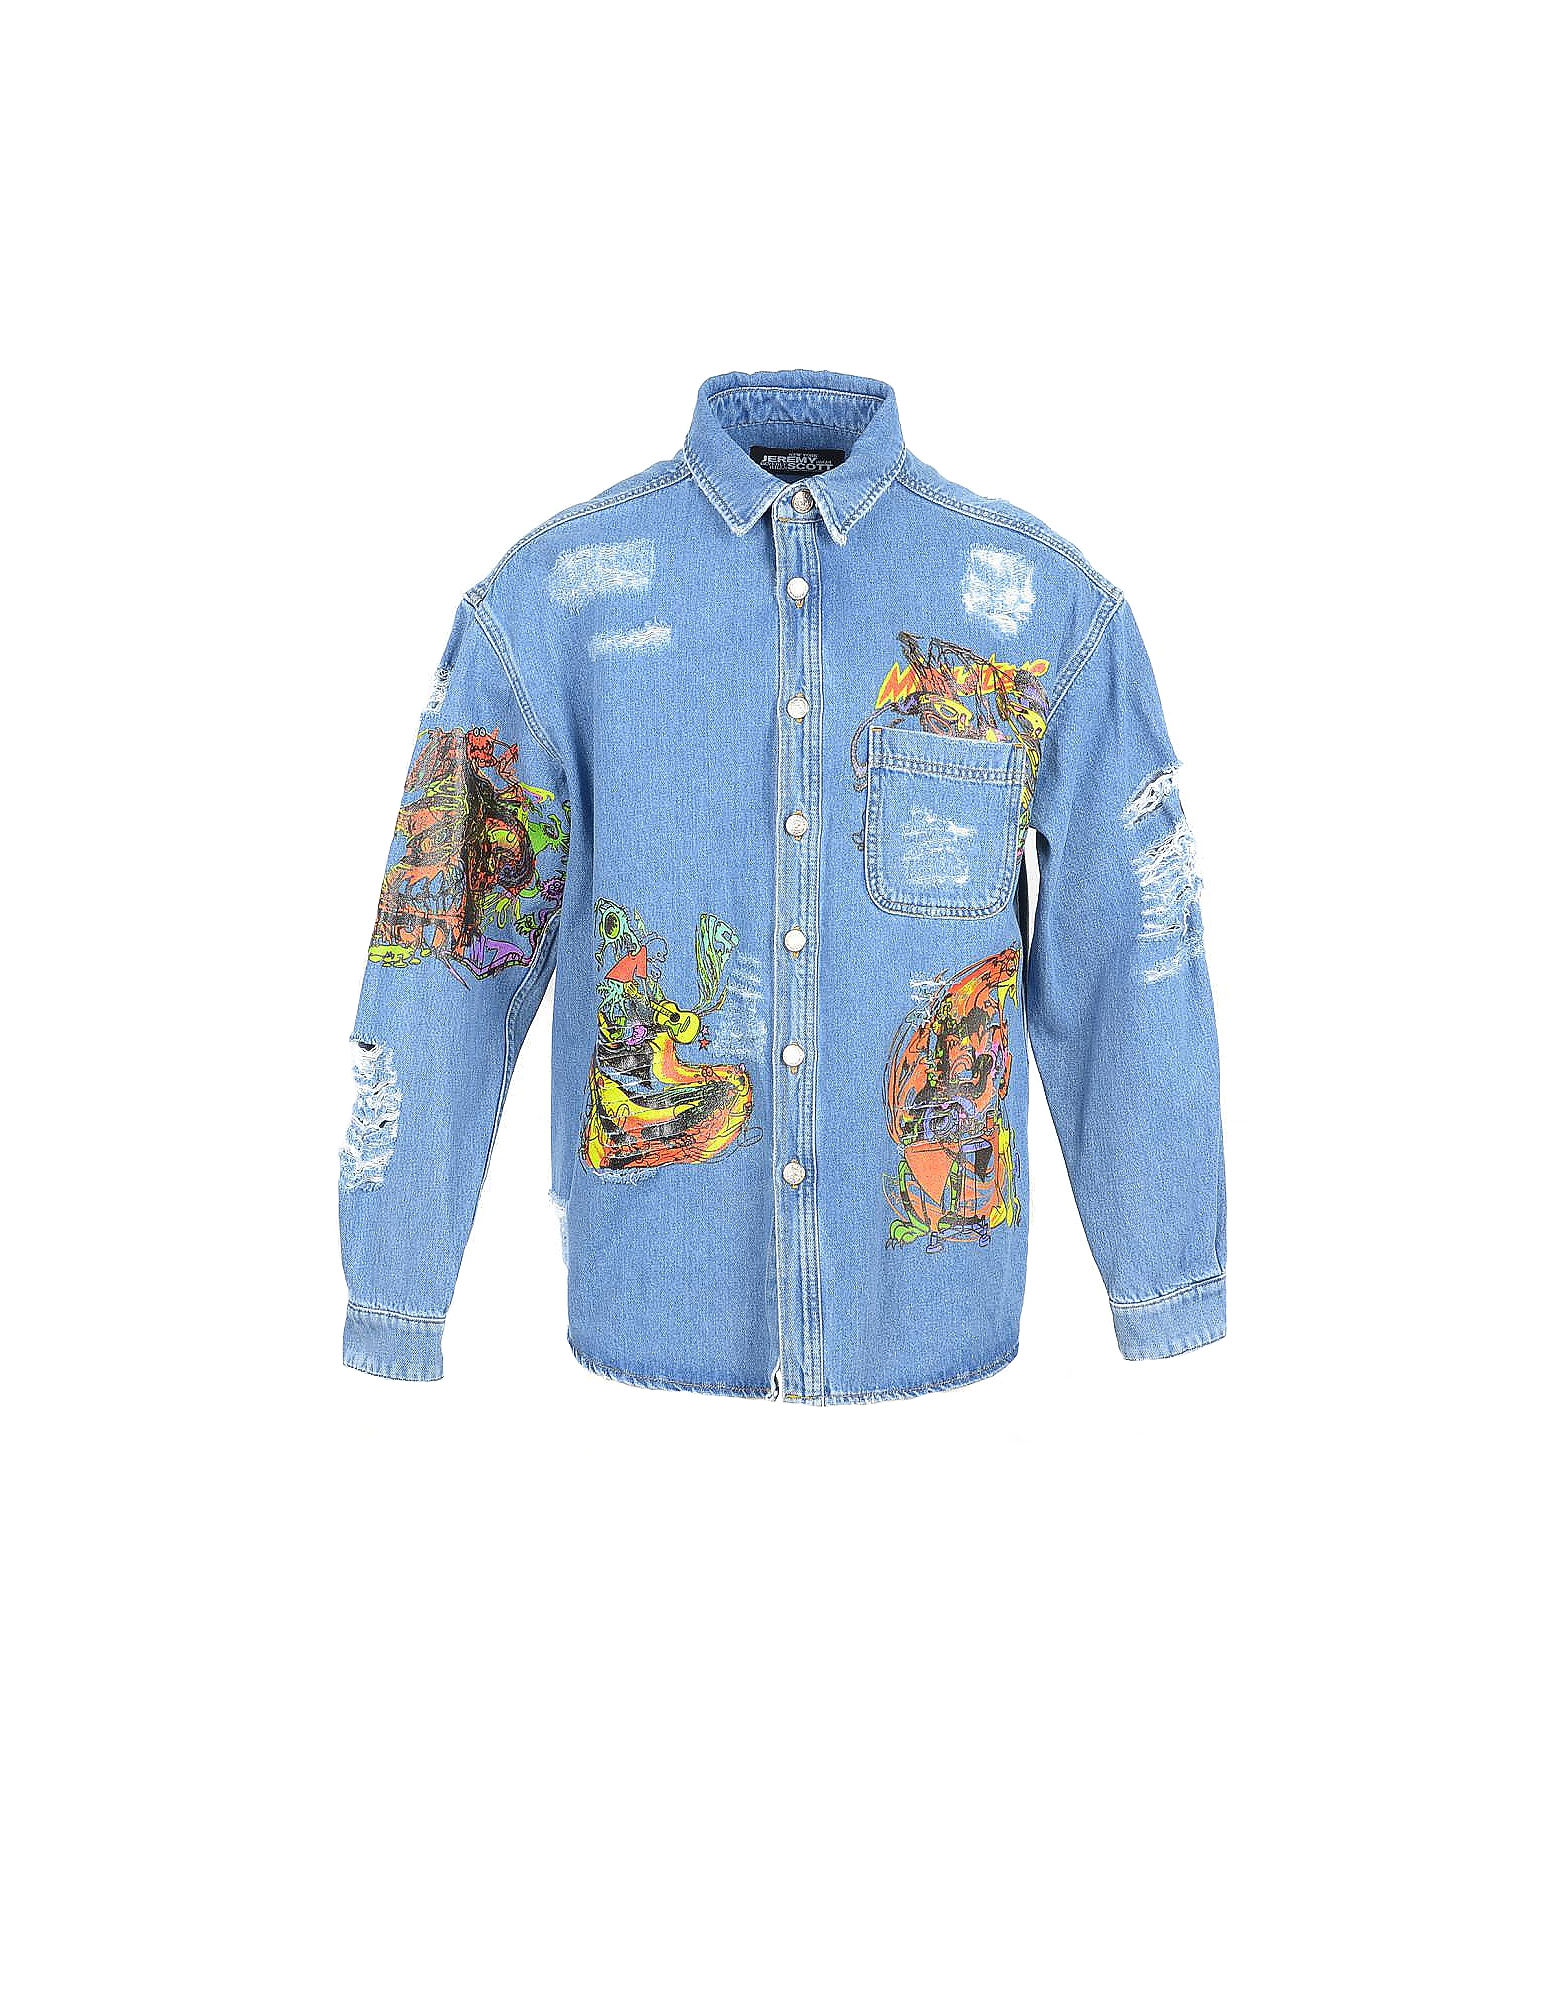 Jeremy Scott Designer Shirts, Distressed Denim Men's Shirt w/Patches